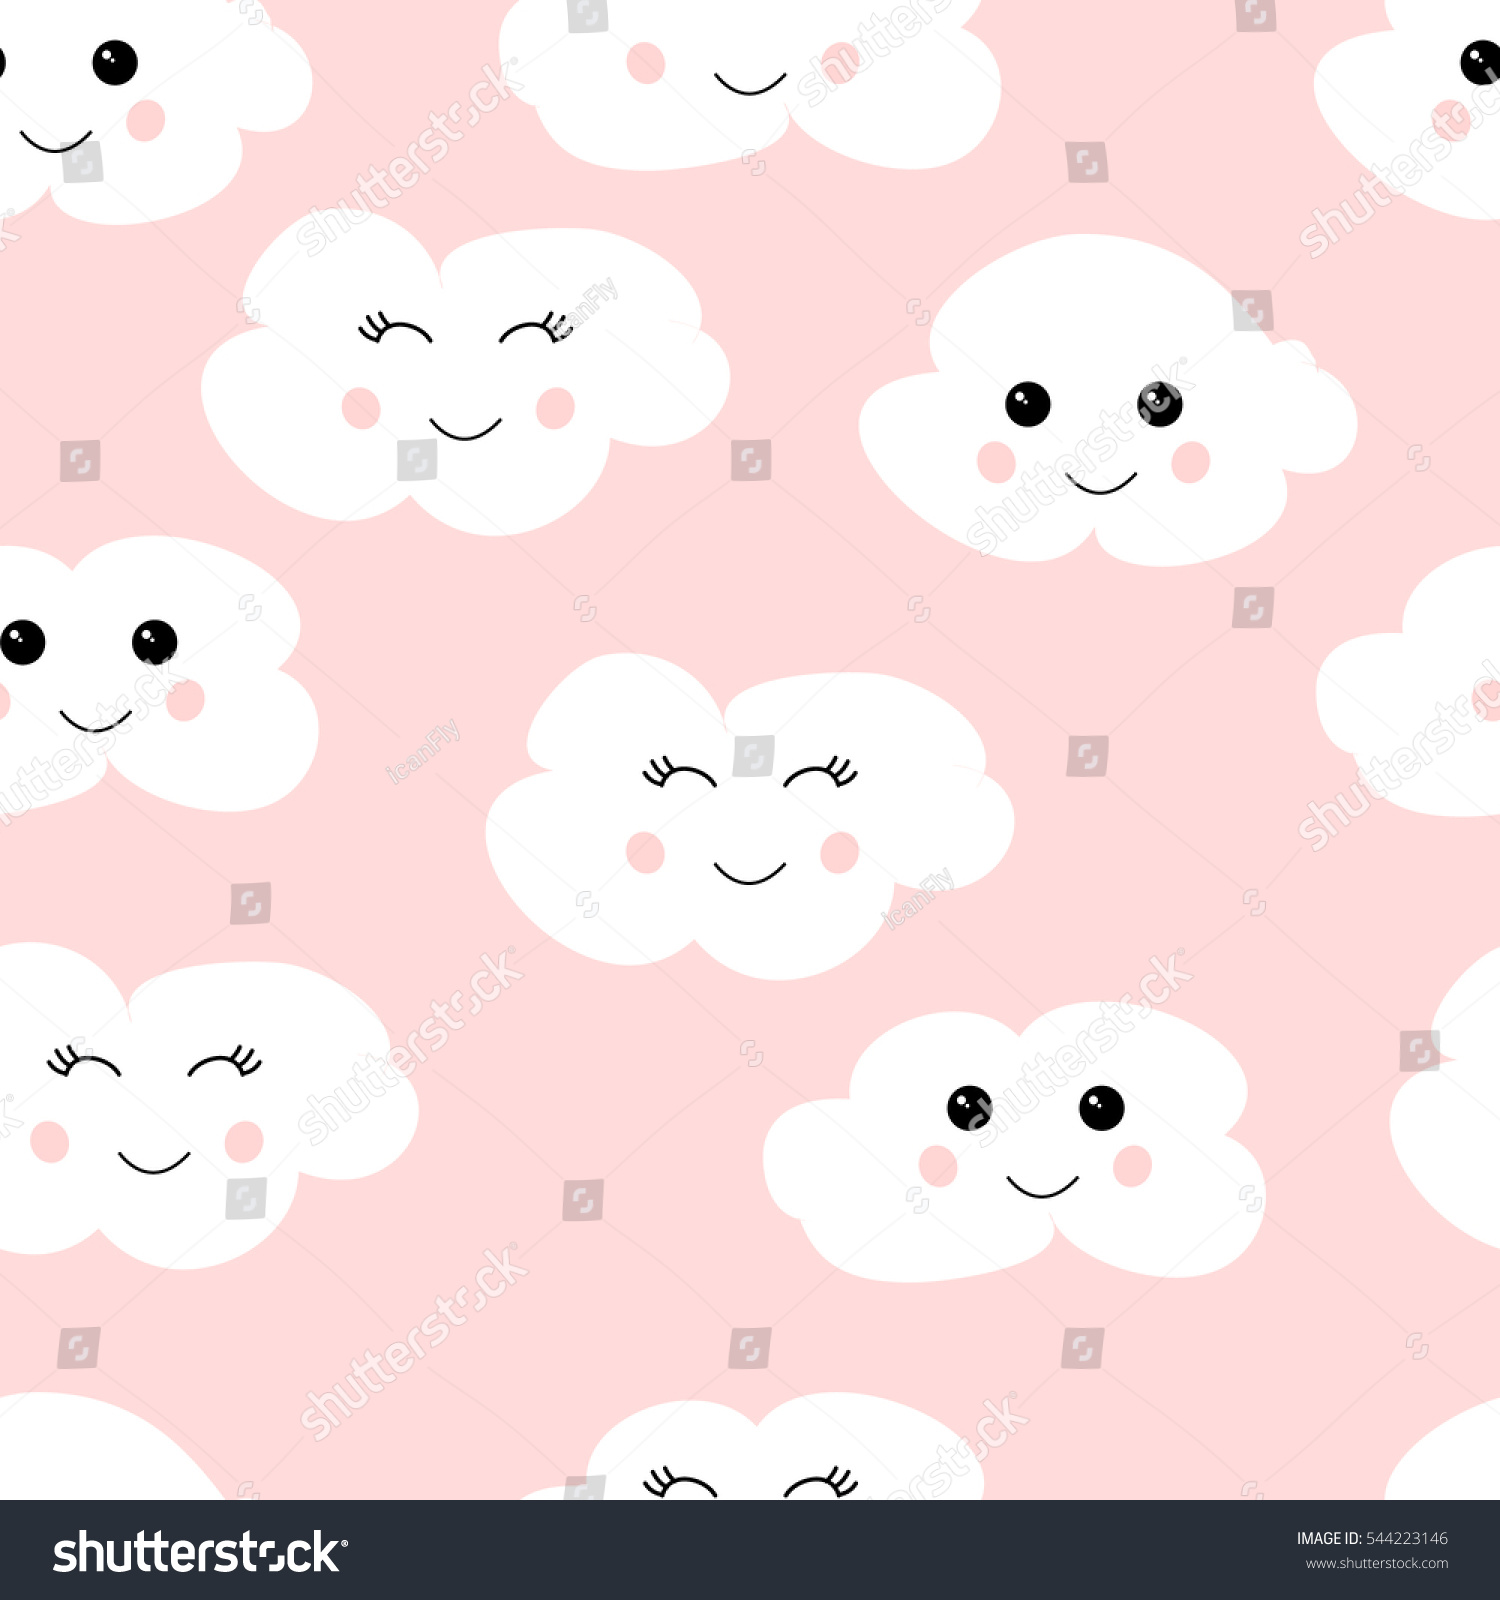 Seamless pattern cute clouds vector eps 10 seamless pattern with cute clouds vector eps10 white clouds on pink background voltagebd Gallery